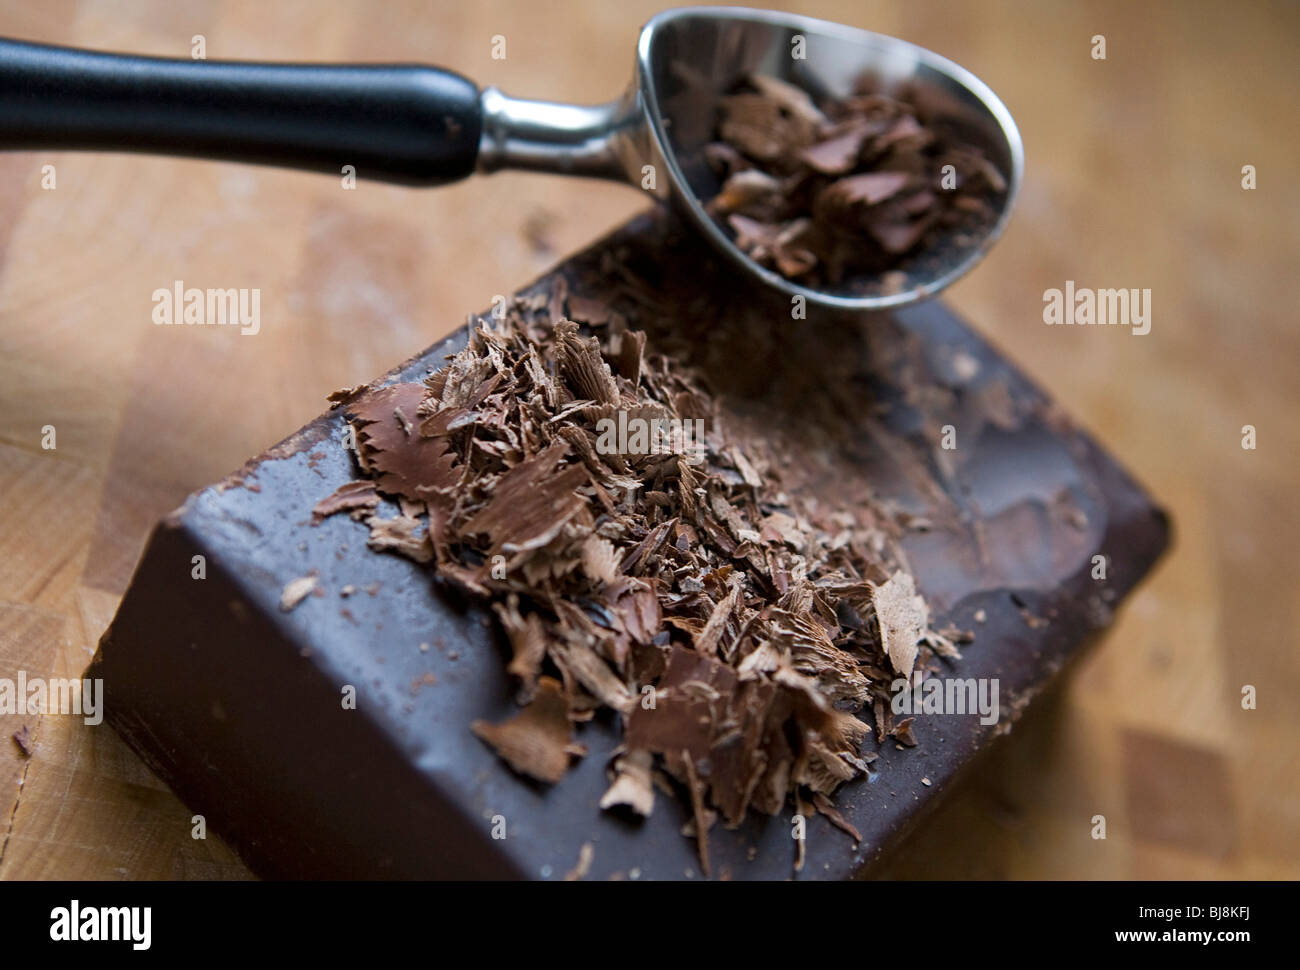 A block of dark chocolate and dark chocolate shavings.  - Stock Image